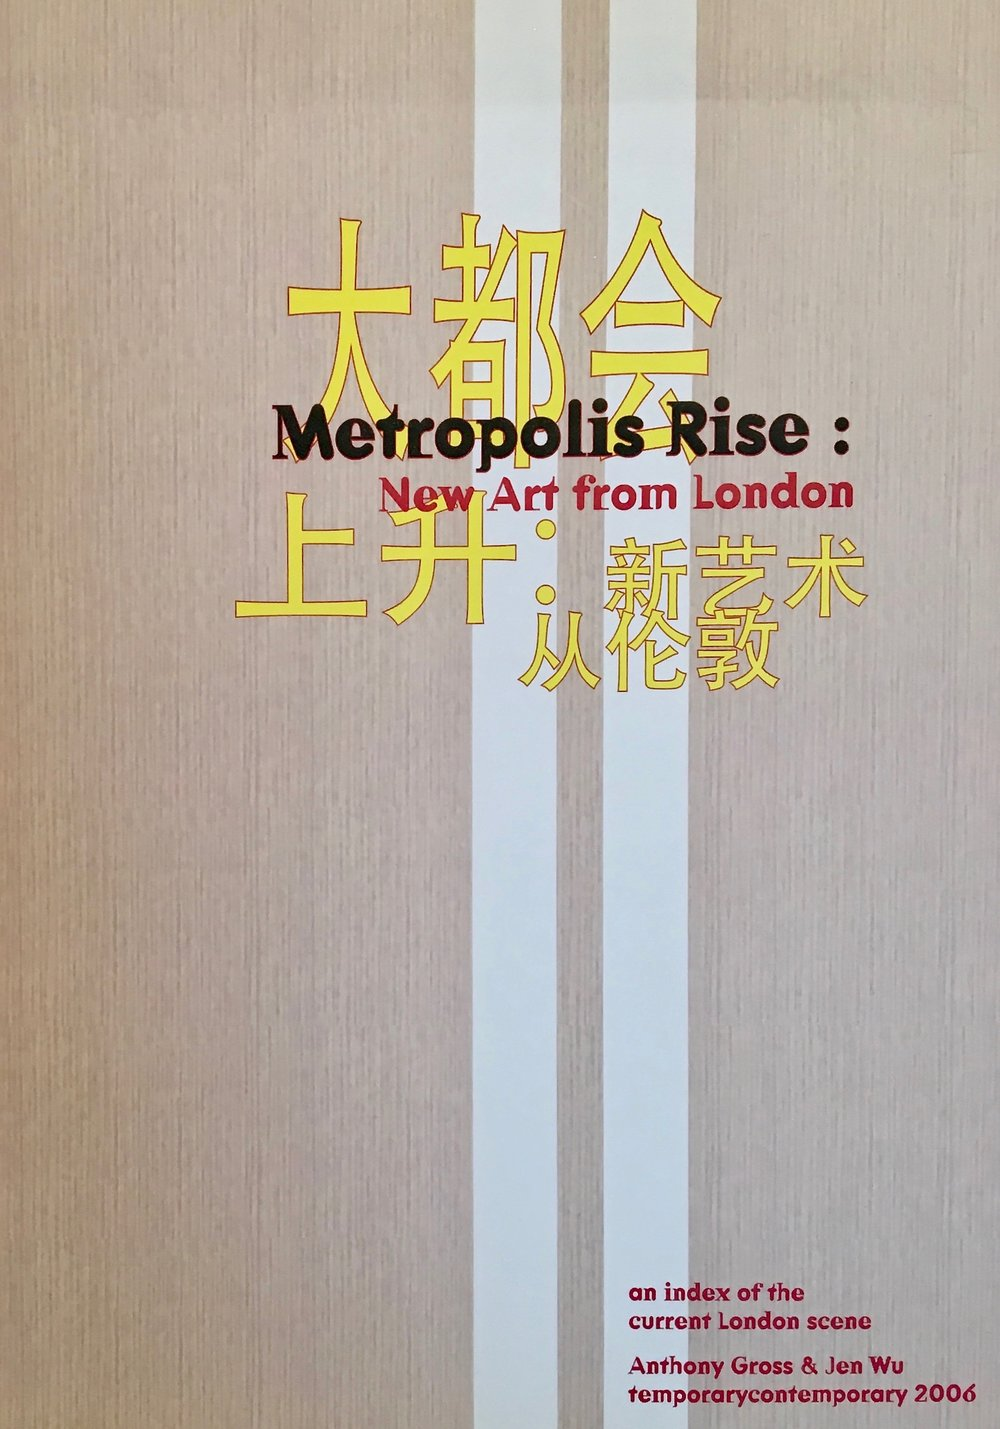 Metropolis Rise temporarycontemporary